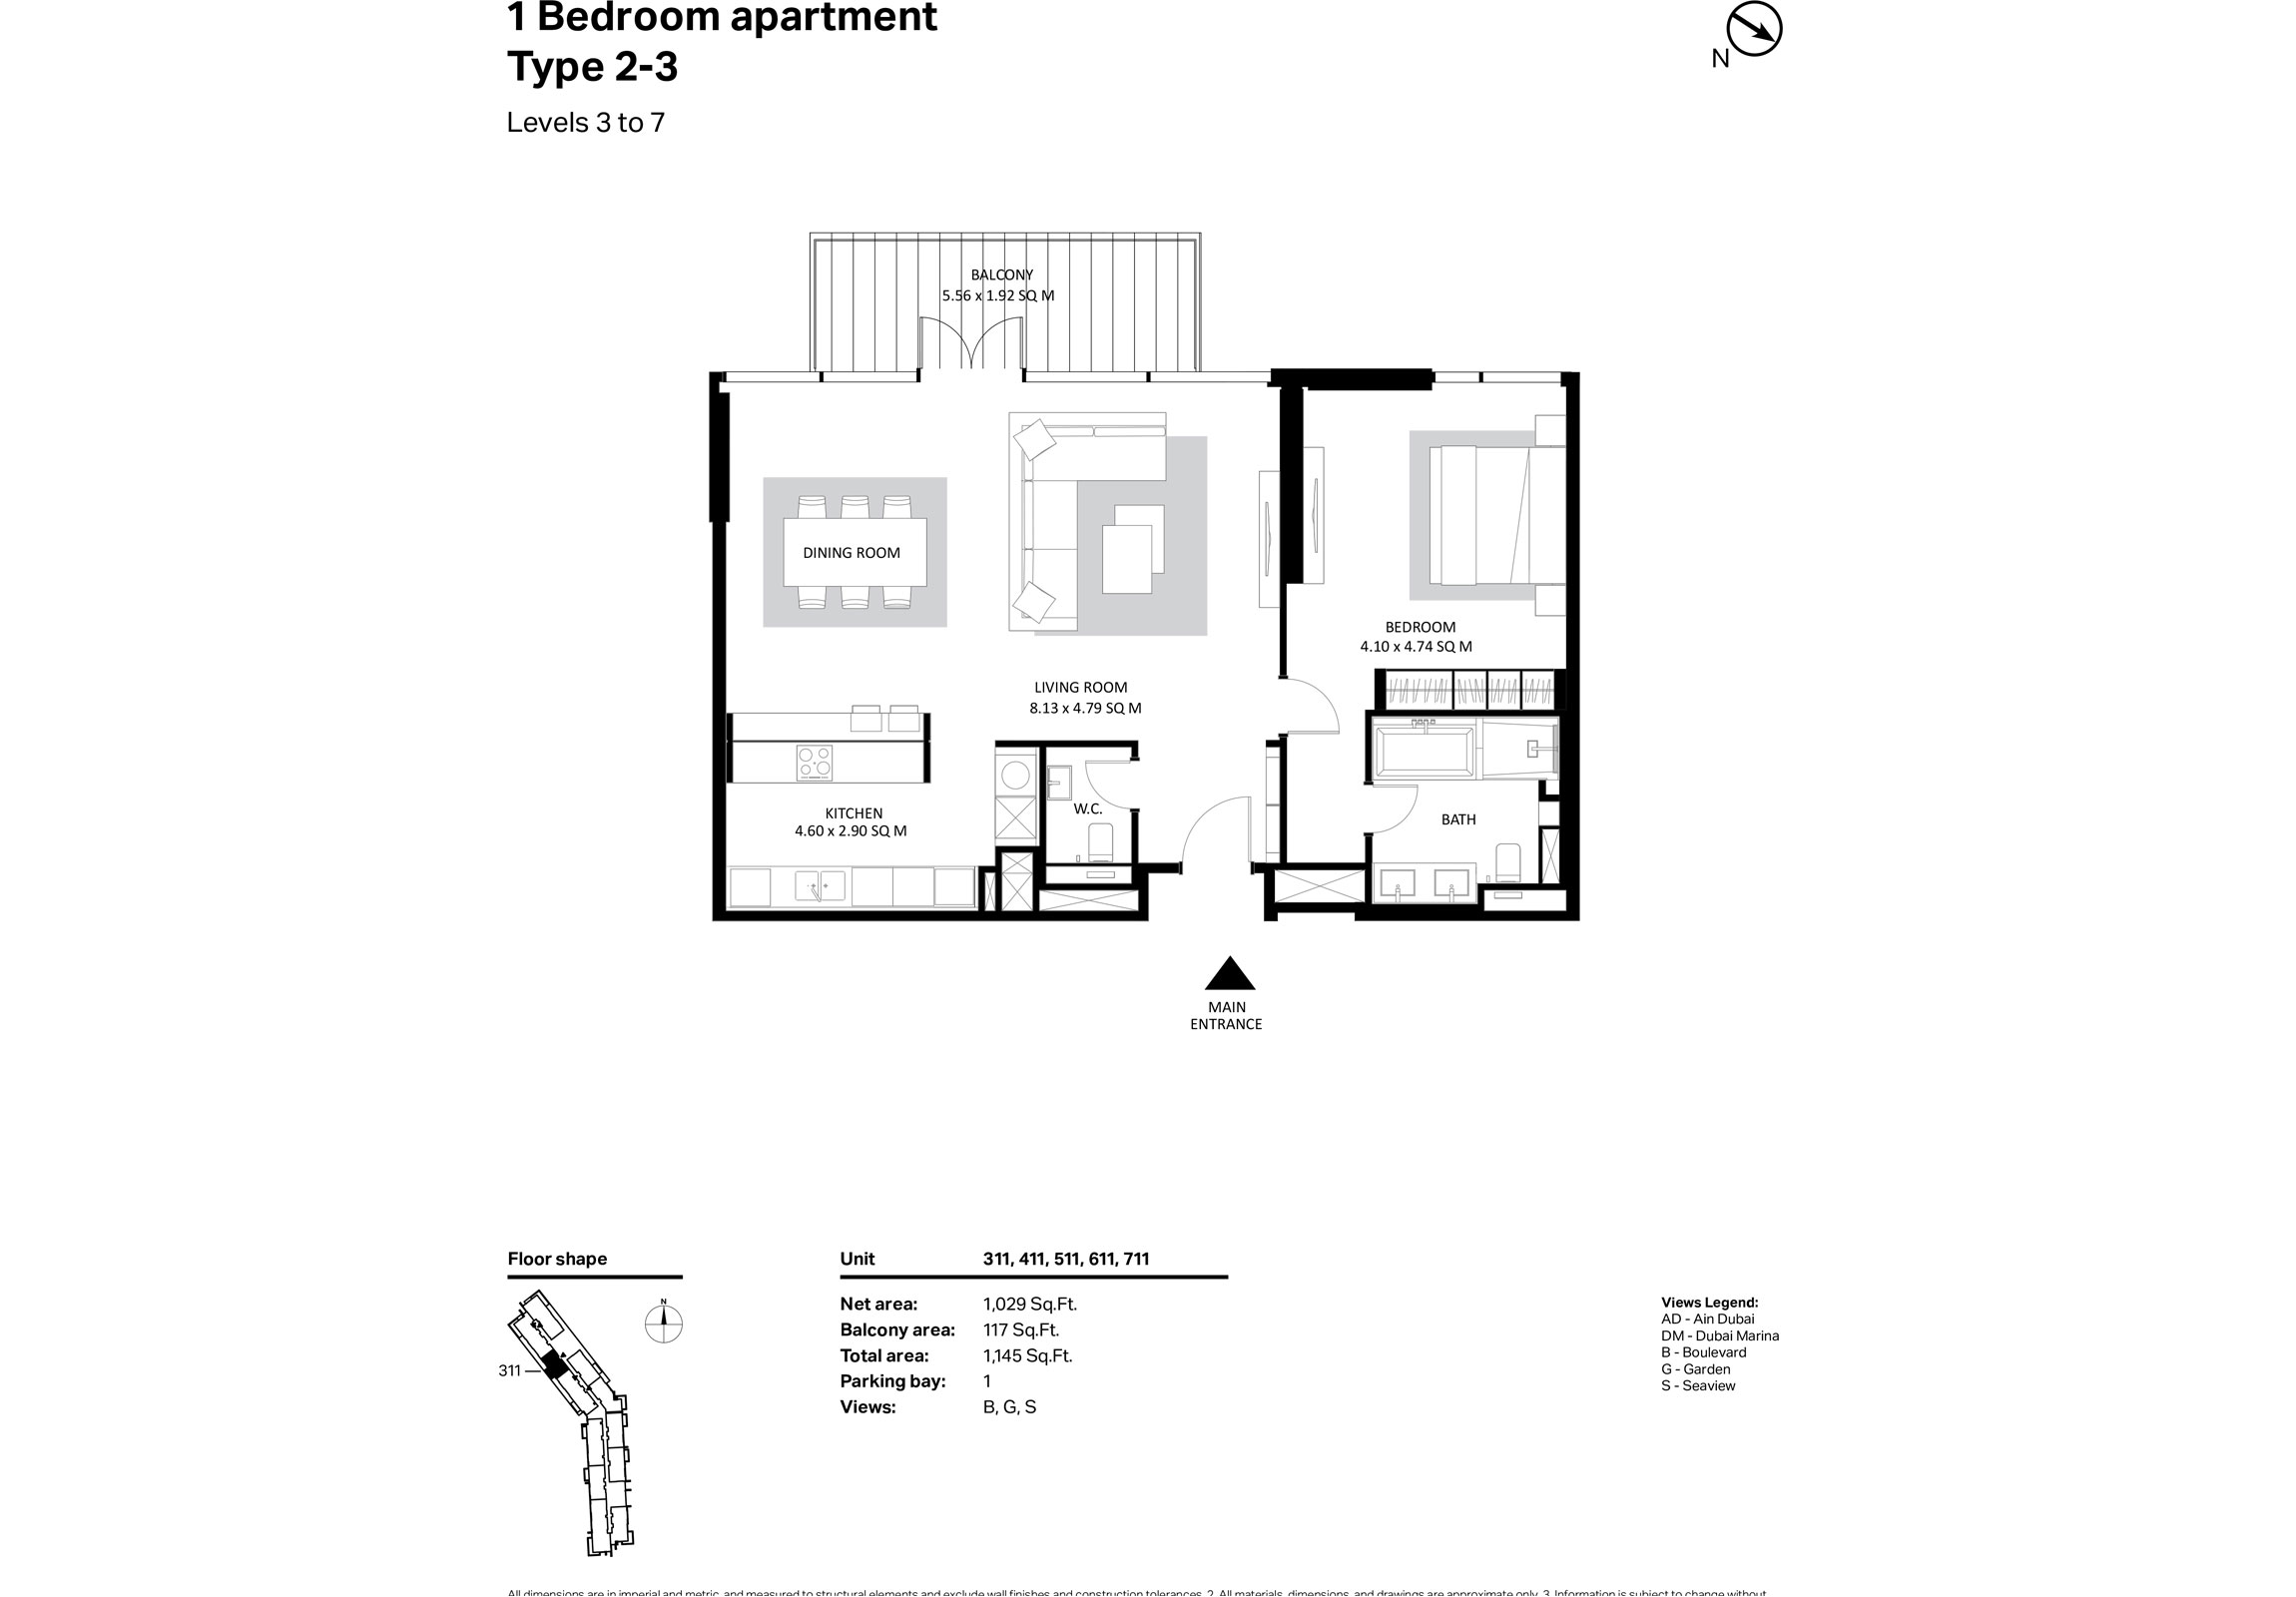 Building 2 - 1 Bedroom Type 2-3 Level 3-7 Size 1145 sq ft